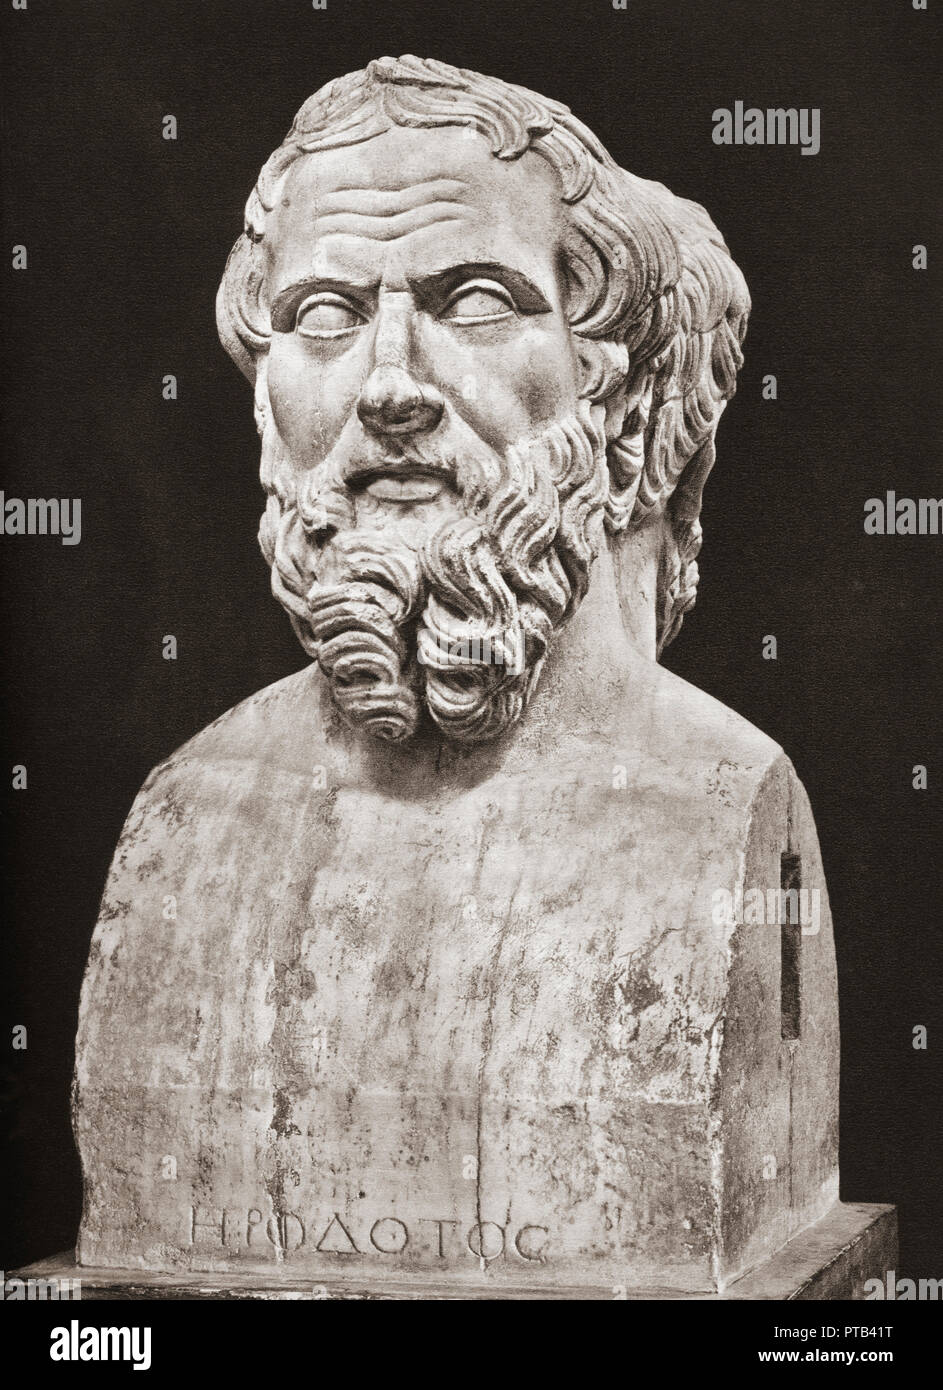 Bust of Herodotus, c. 484 – c. 425 BC. Ancient Greek historian. - Stock Image